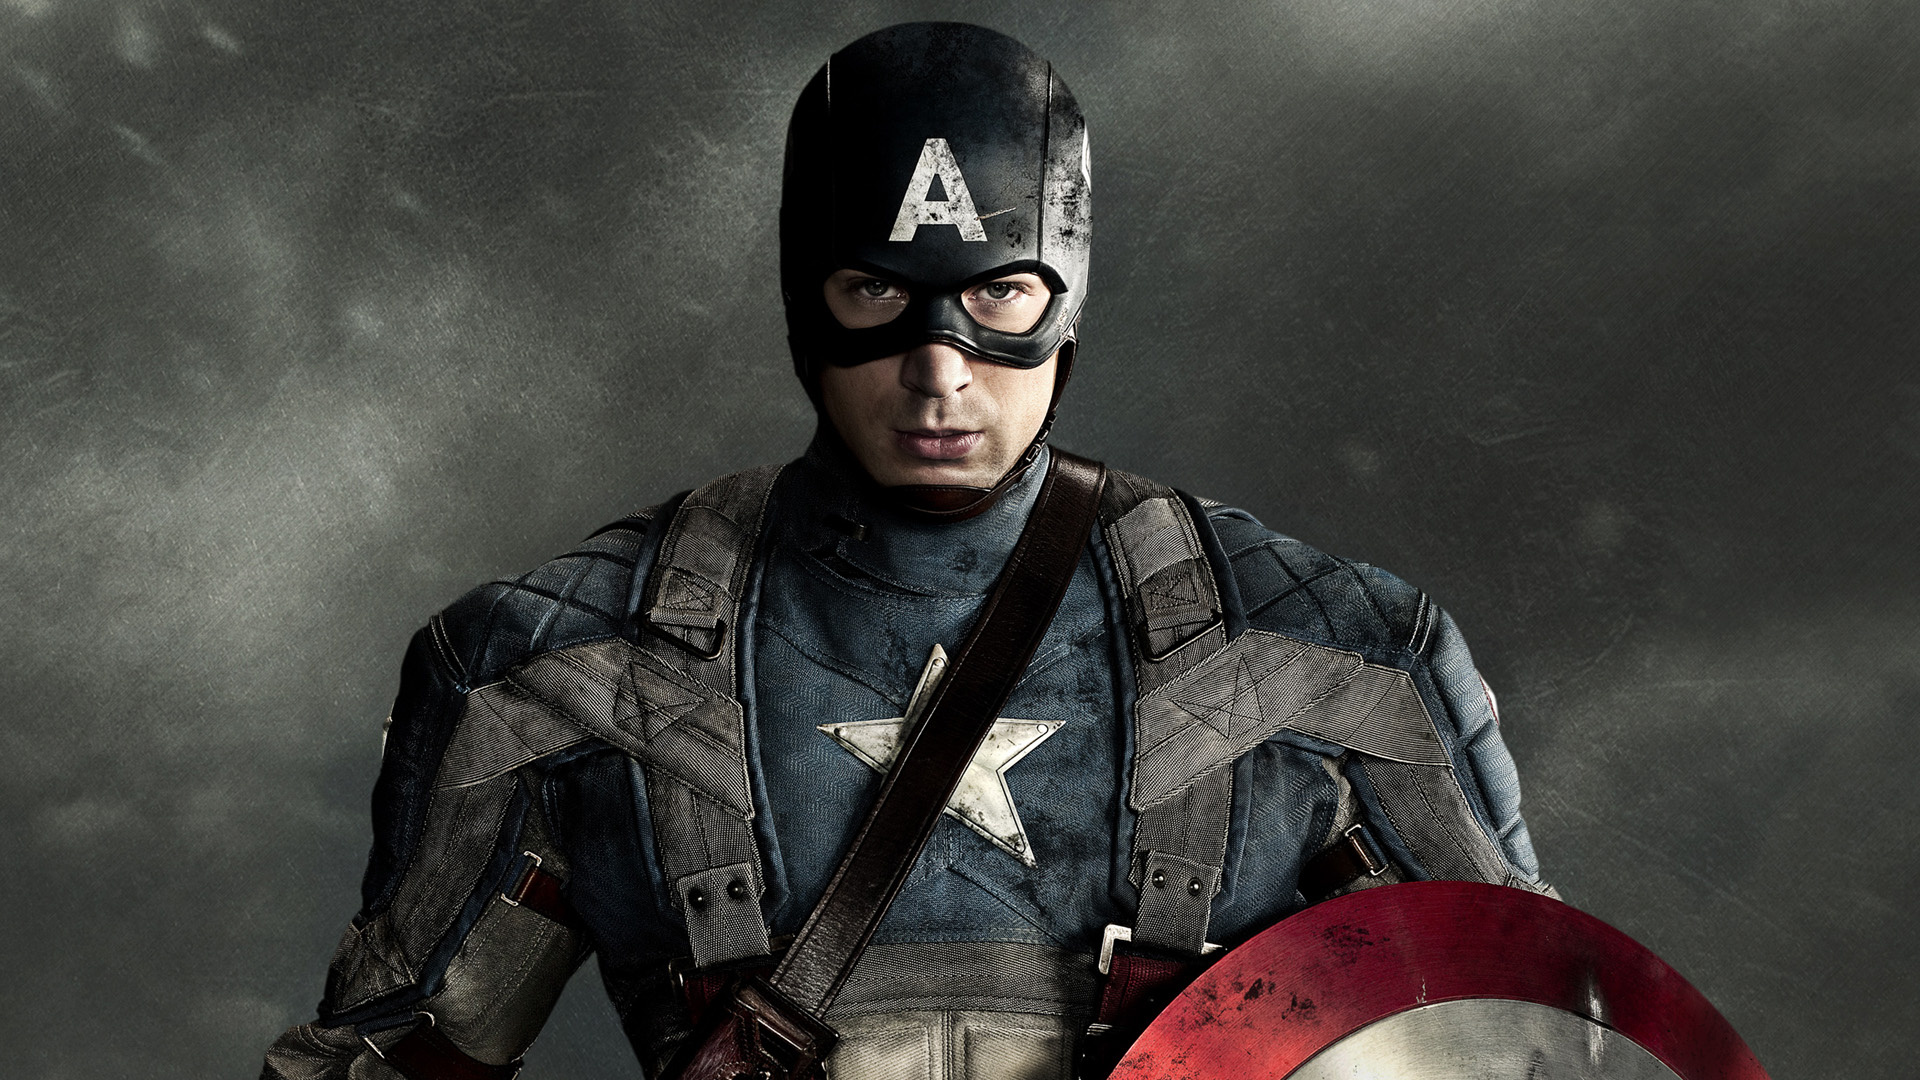 """CAPTAIN AMERICA"" SEQUEL BLOWS UP MARVEL FORUMULA"